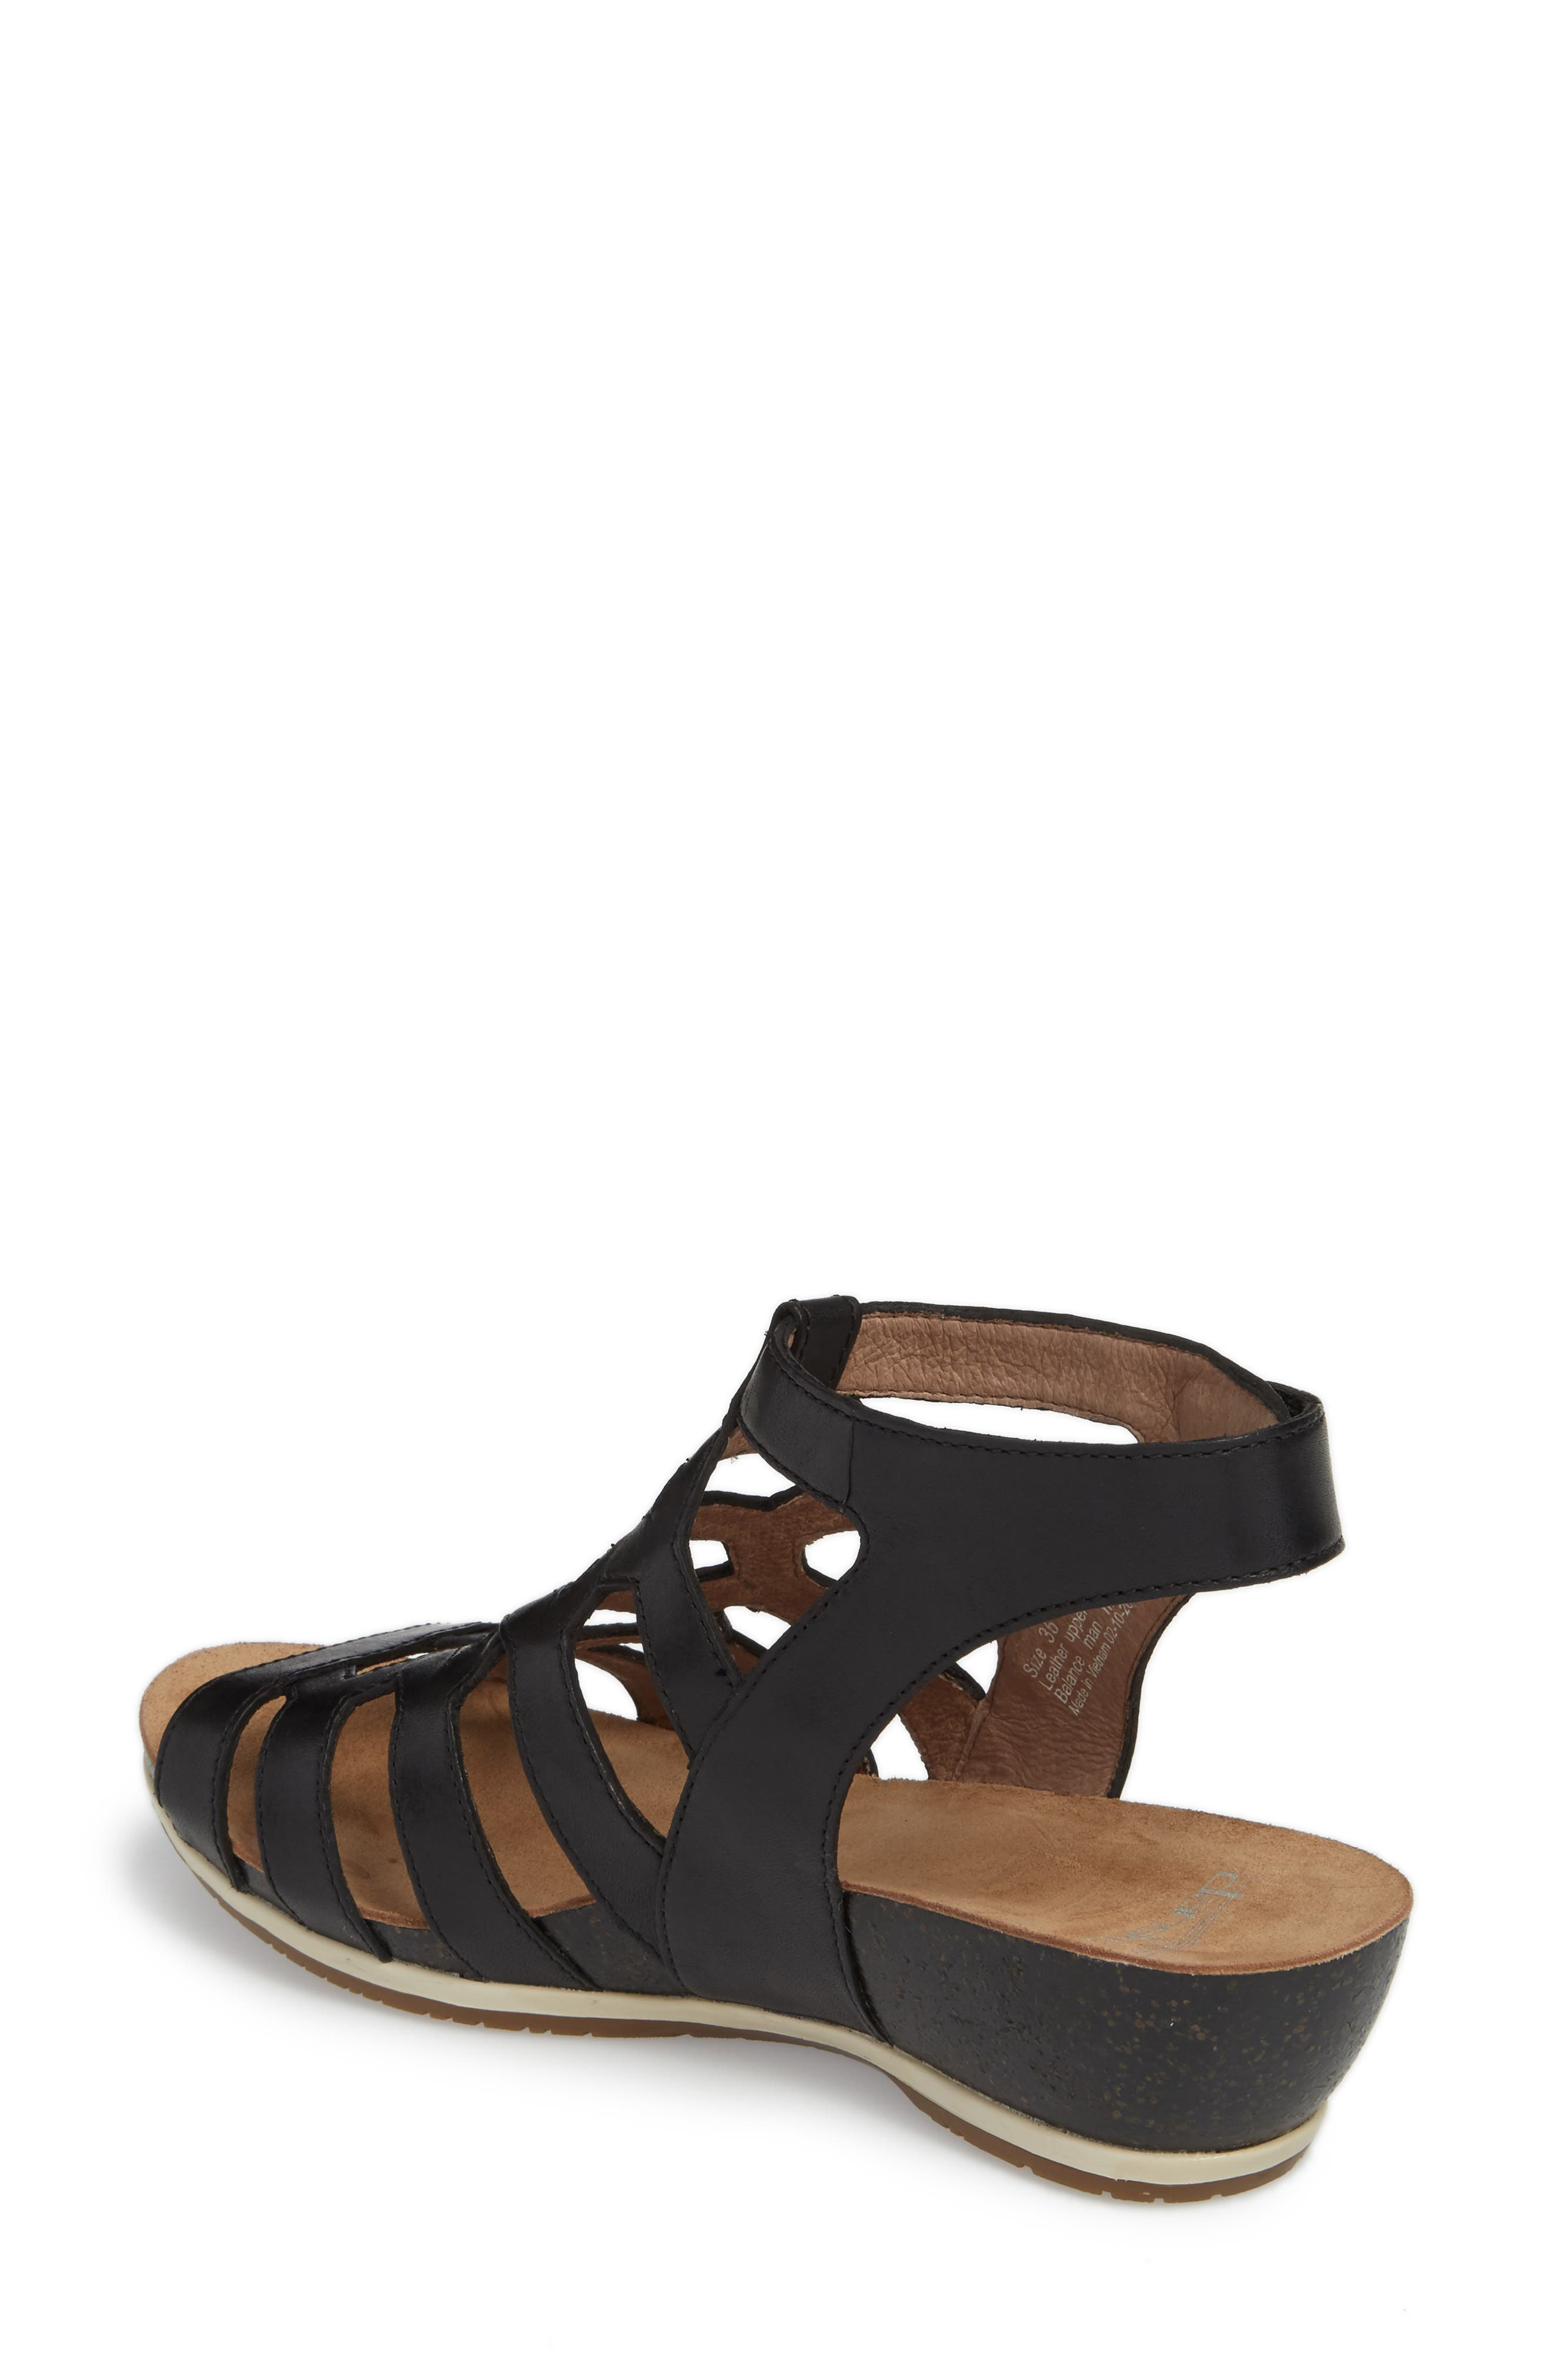 Valentina Caged Wedge Sandal,                             Alternate thumbnail 2, color,                             001